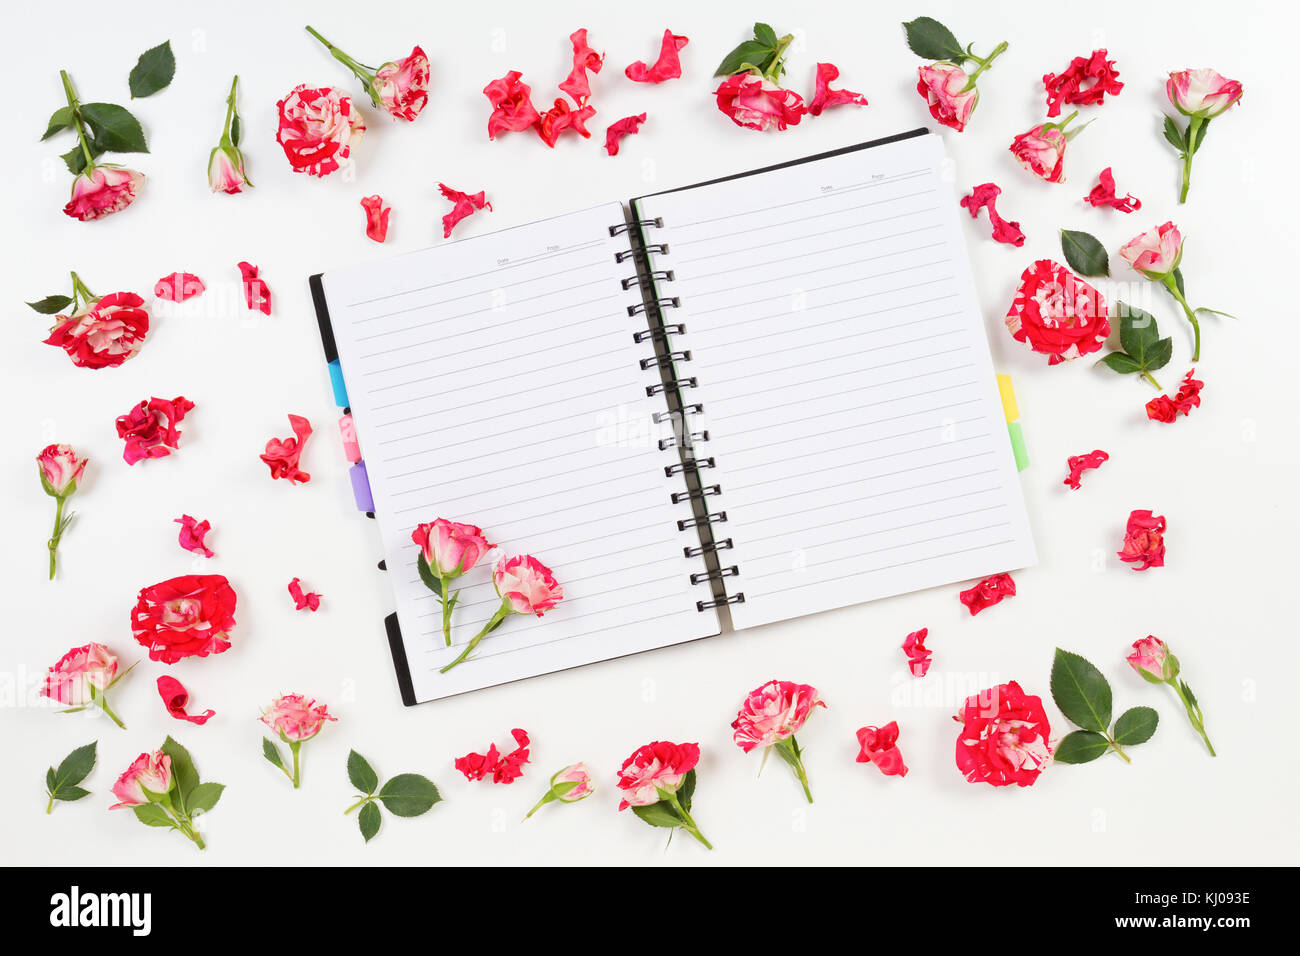 Floral Paper Border Stock Photos Floral Paper Border Stock Images